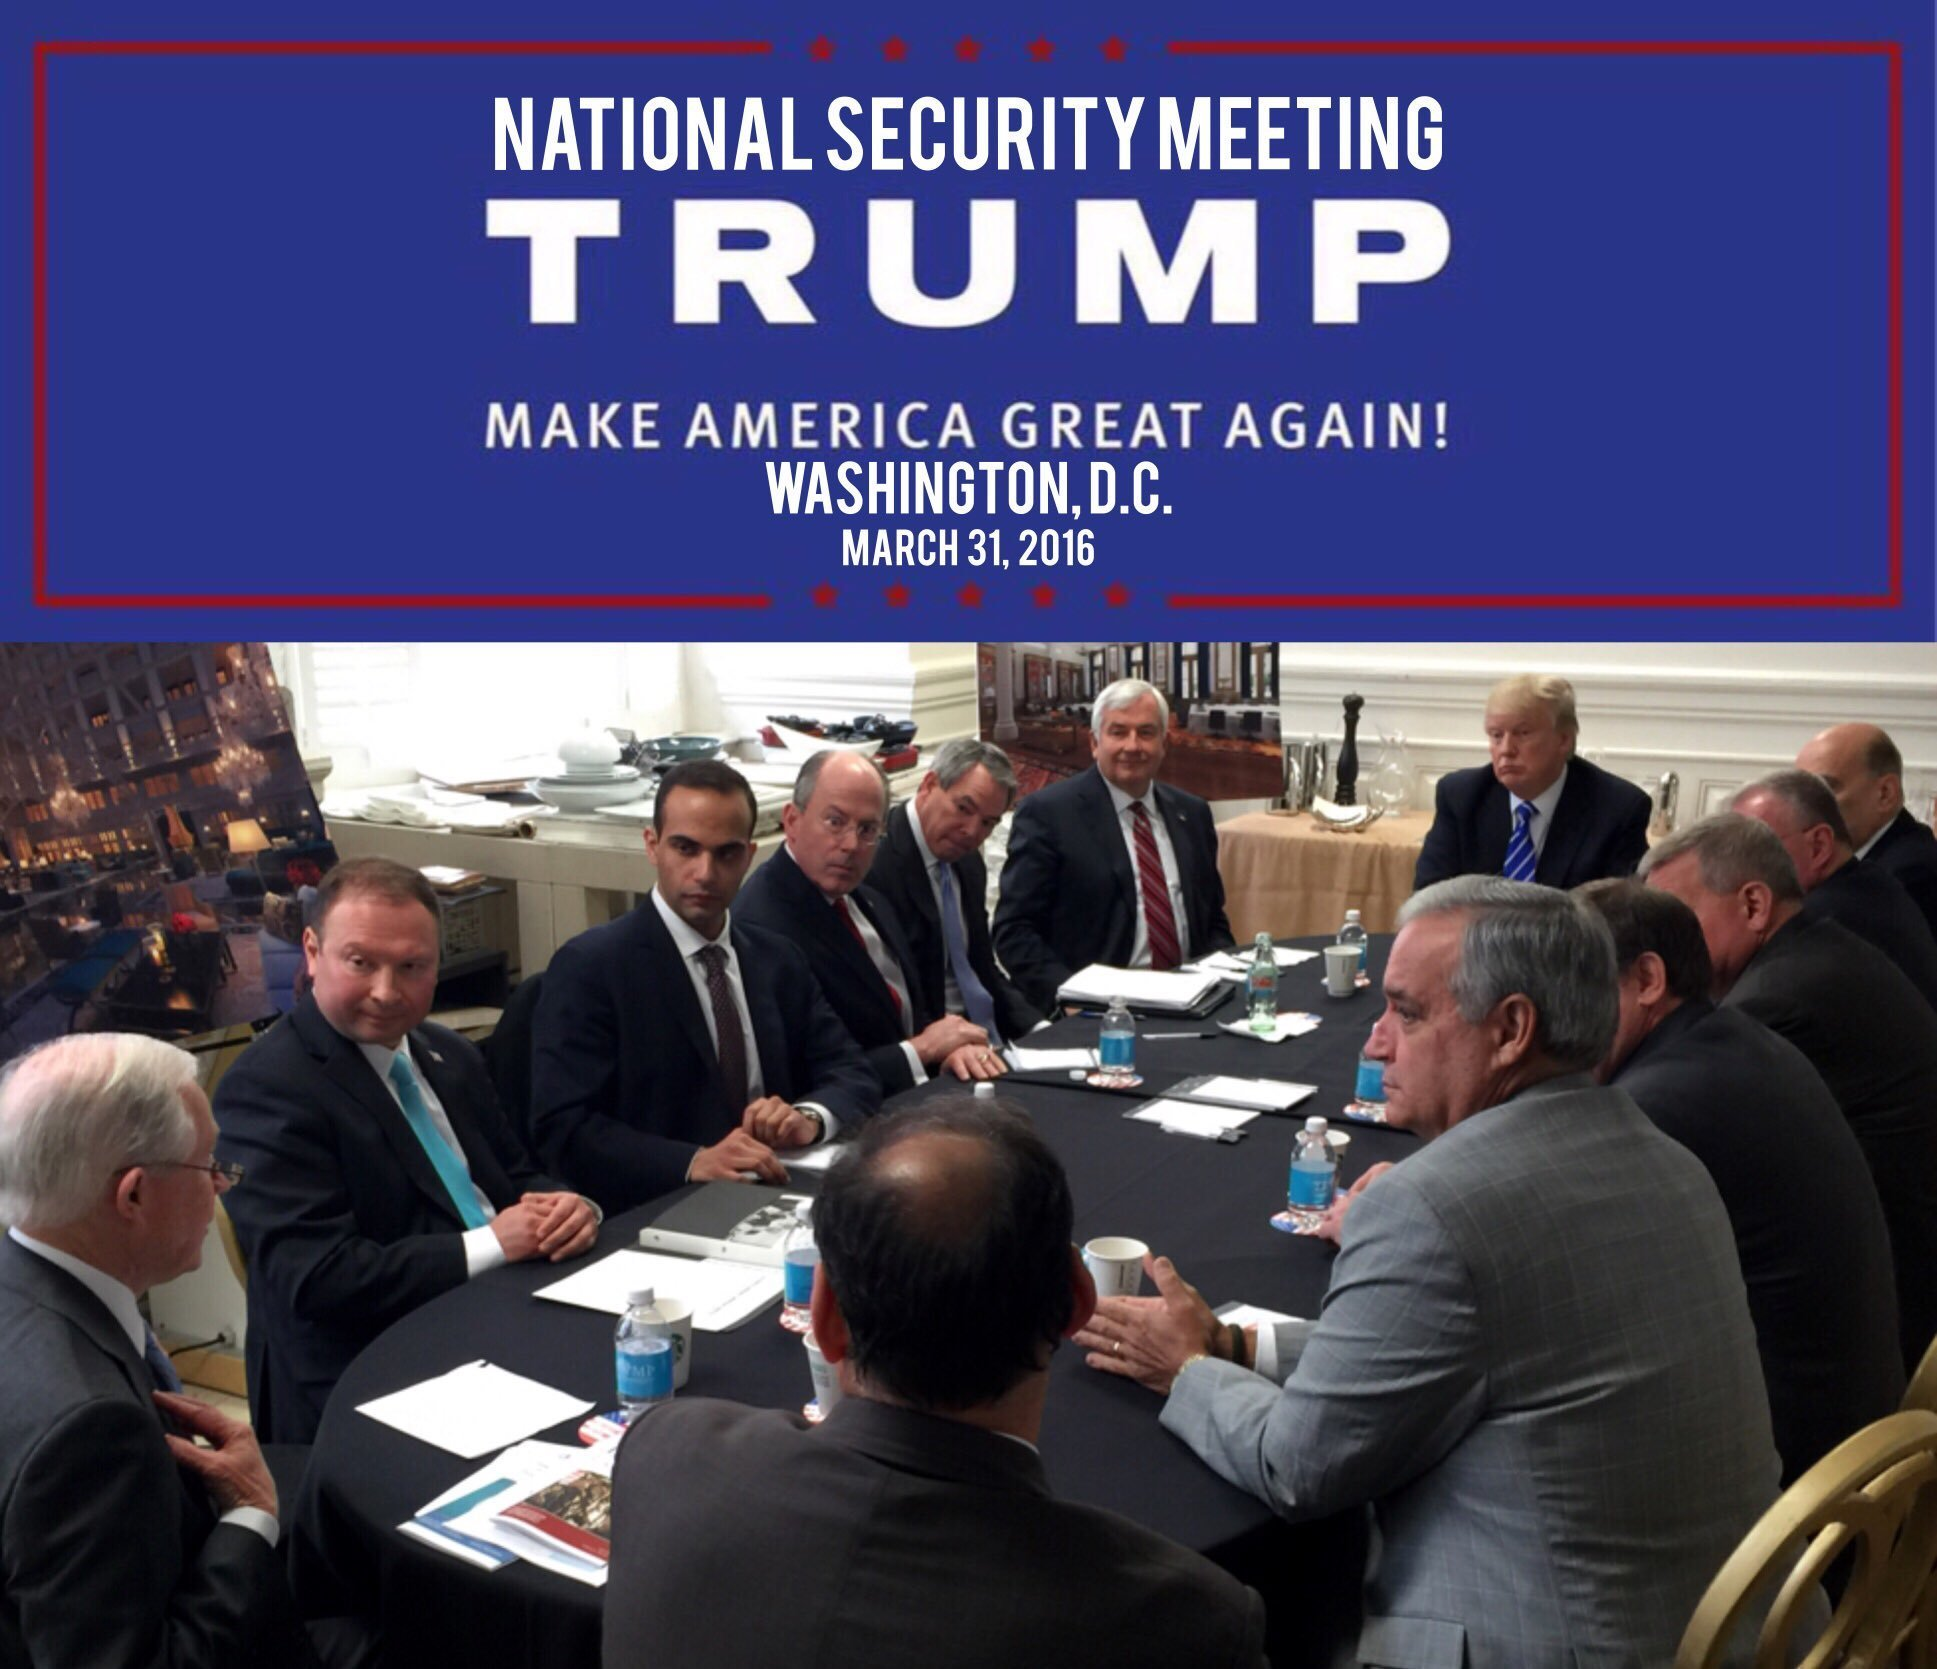 In this photo from President Donald Trump's Twitter account, George Papadopoulos, third from left, sits at a table with then-candidate Trump and others at what is labeled at a national security meeting in Washington that was posted on March 31, 2016.(Donald Trump's Twitter account via AP)